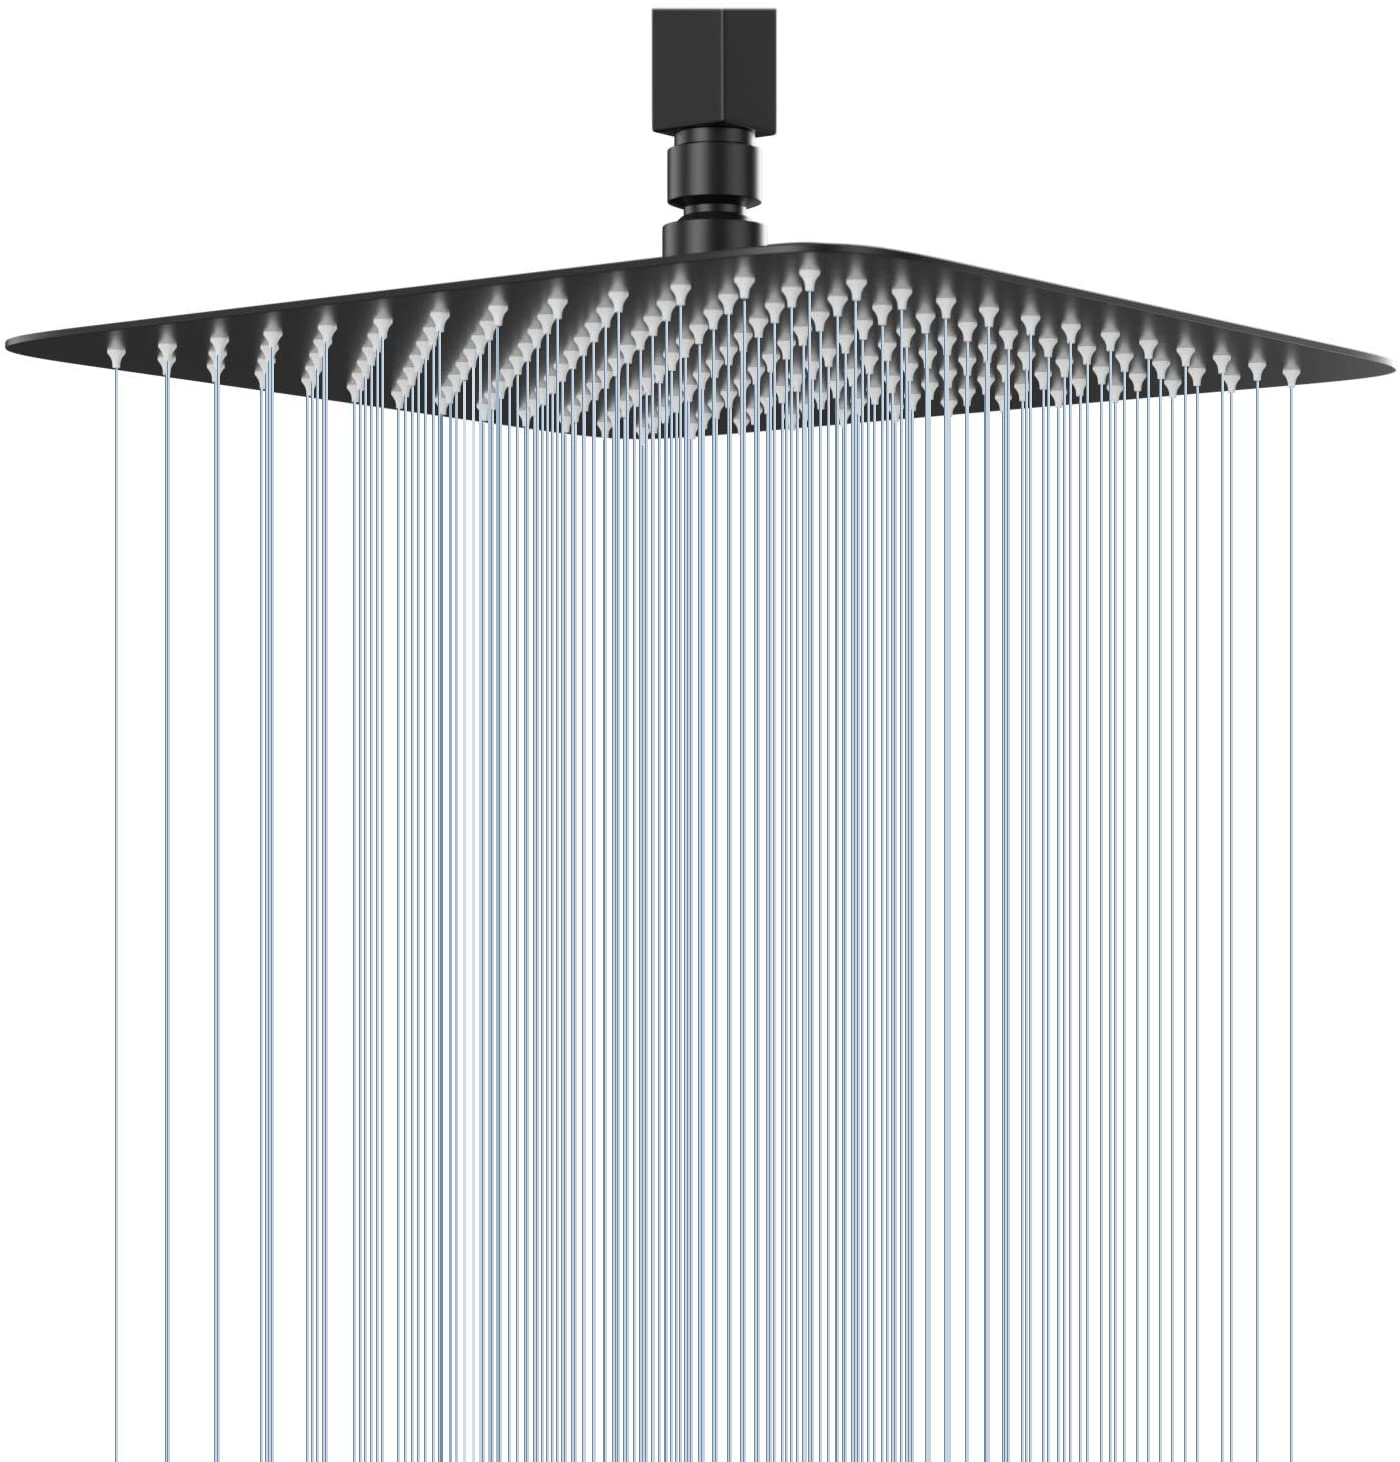 Ggstudy High Pressure Square Shower Head 12 Inches Large Stainless Steel Shower Heads Ultra Thin Rainfall Bath Shower 1 2 Connection Oil Rubbed Bronze Black Shower Head Amazon Com